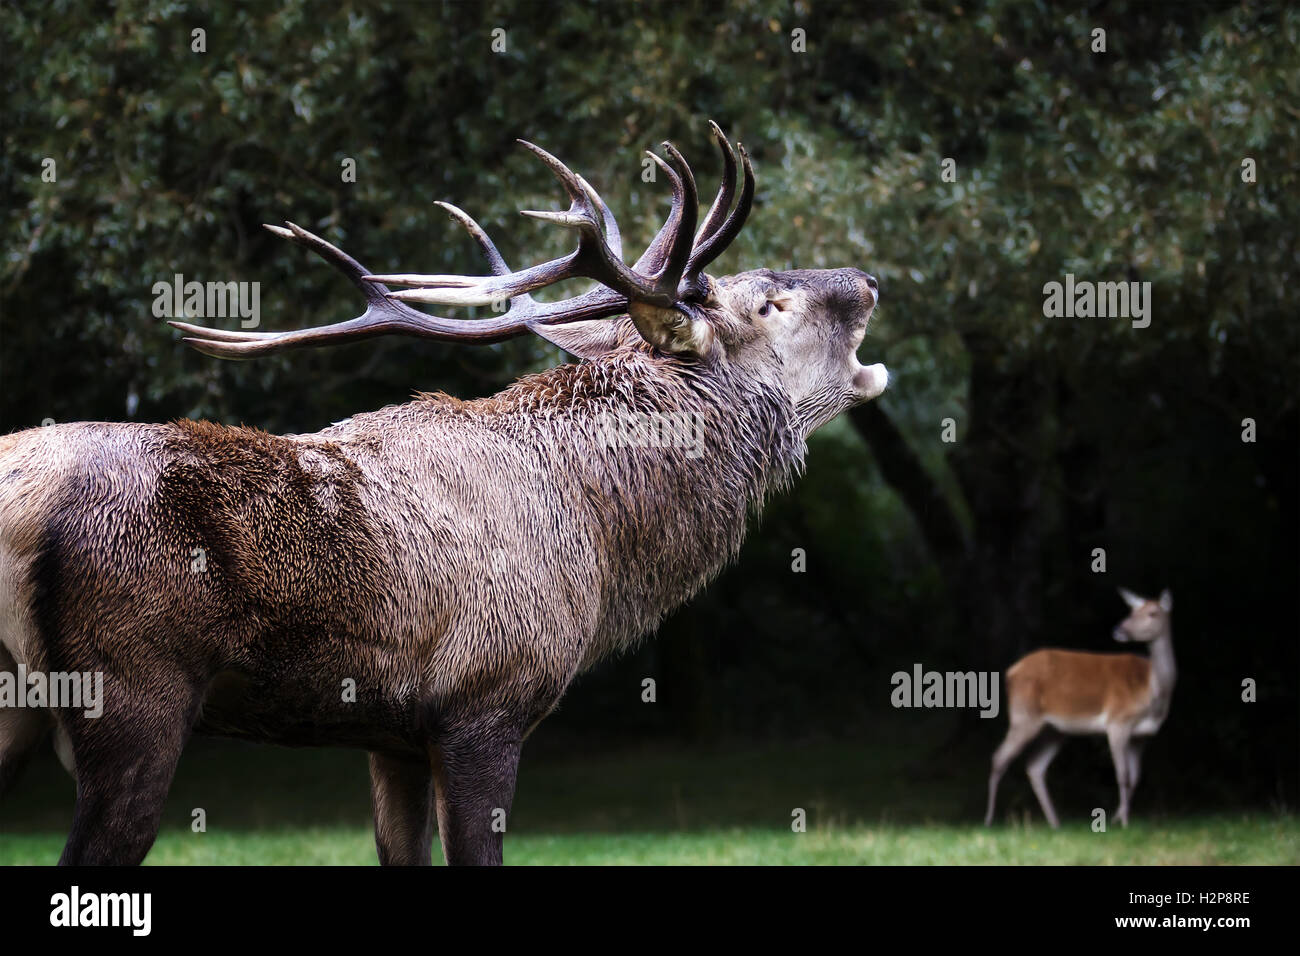 A male deer in the foreground with its mighty horns. With the mouth emits the classic roar in the mating season. - Stock Image